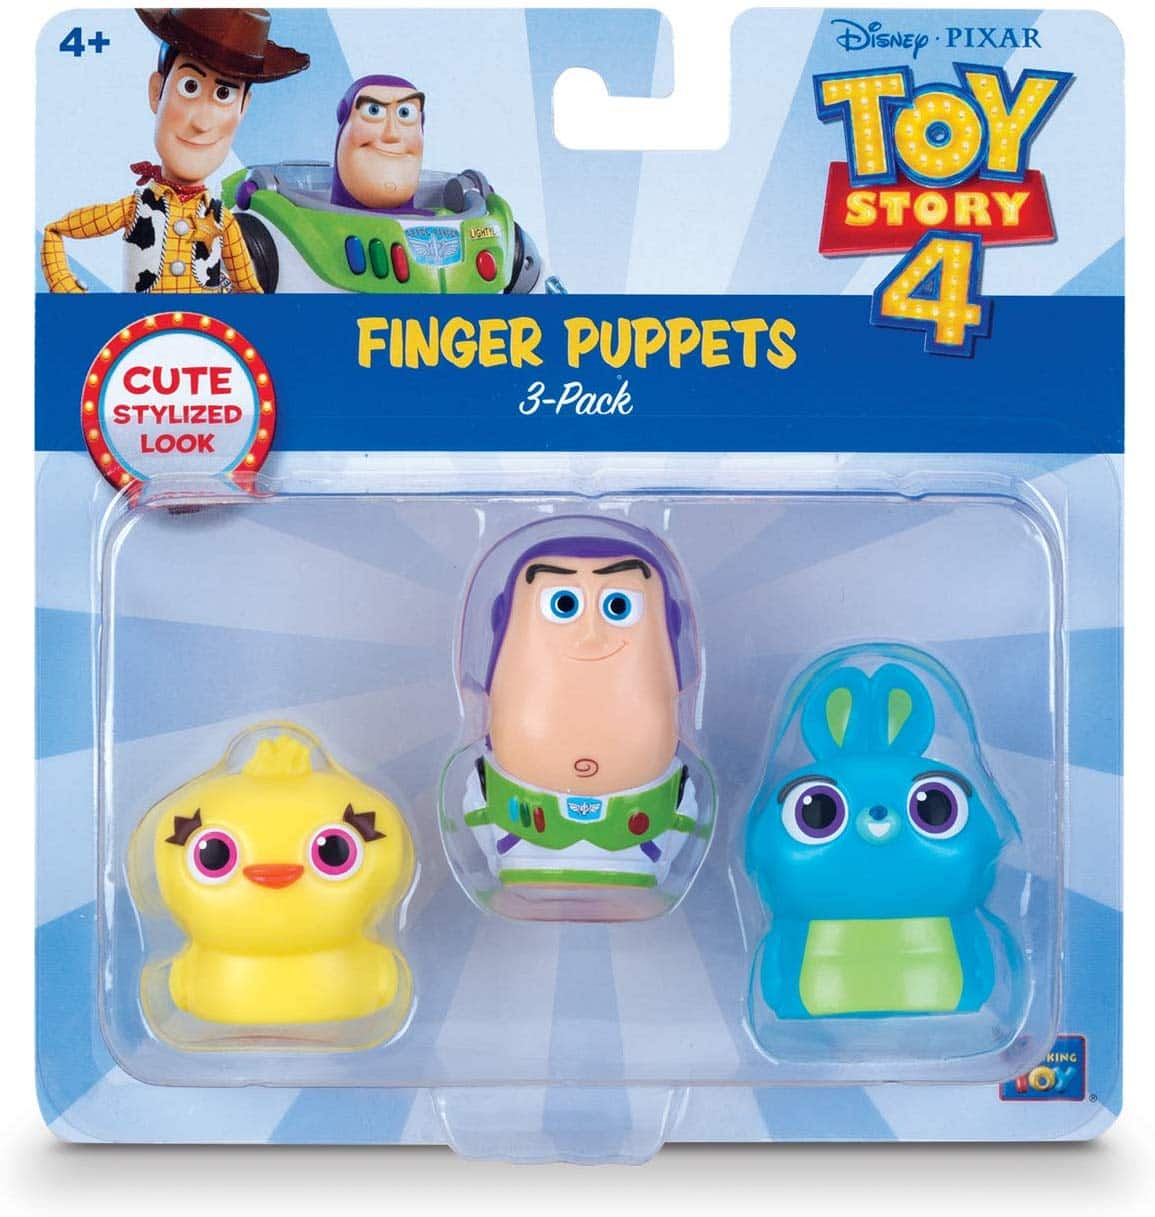 Toy Story Disney Pixar 4 Finger Puppets - 3 Pack - Buzz Lightyear, Bunny, Ducky - $5.07 + FS at Amazon